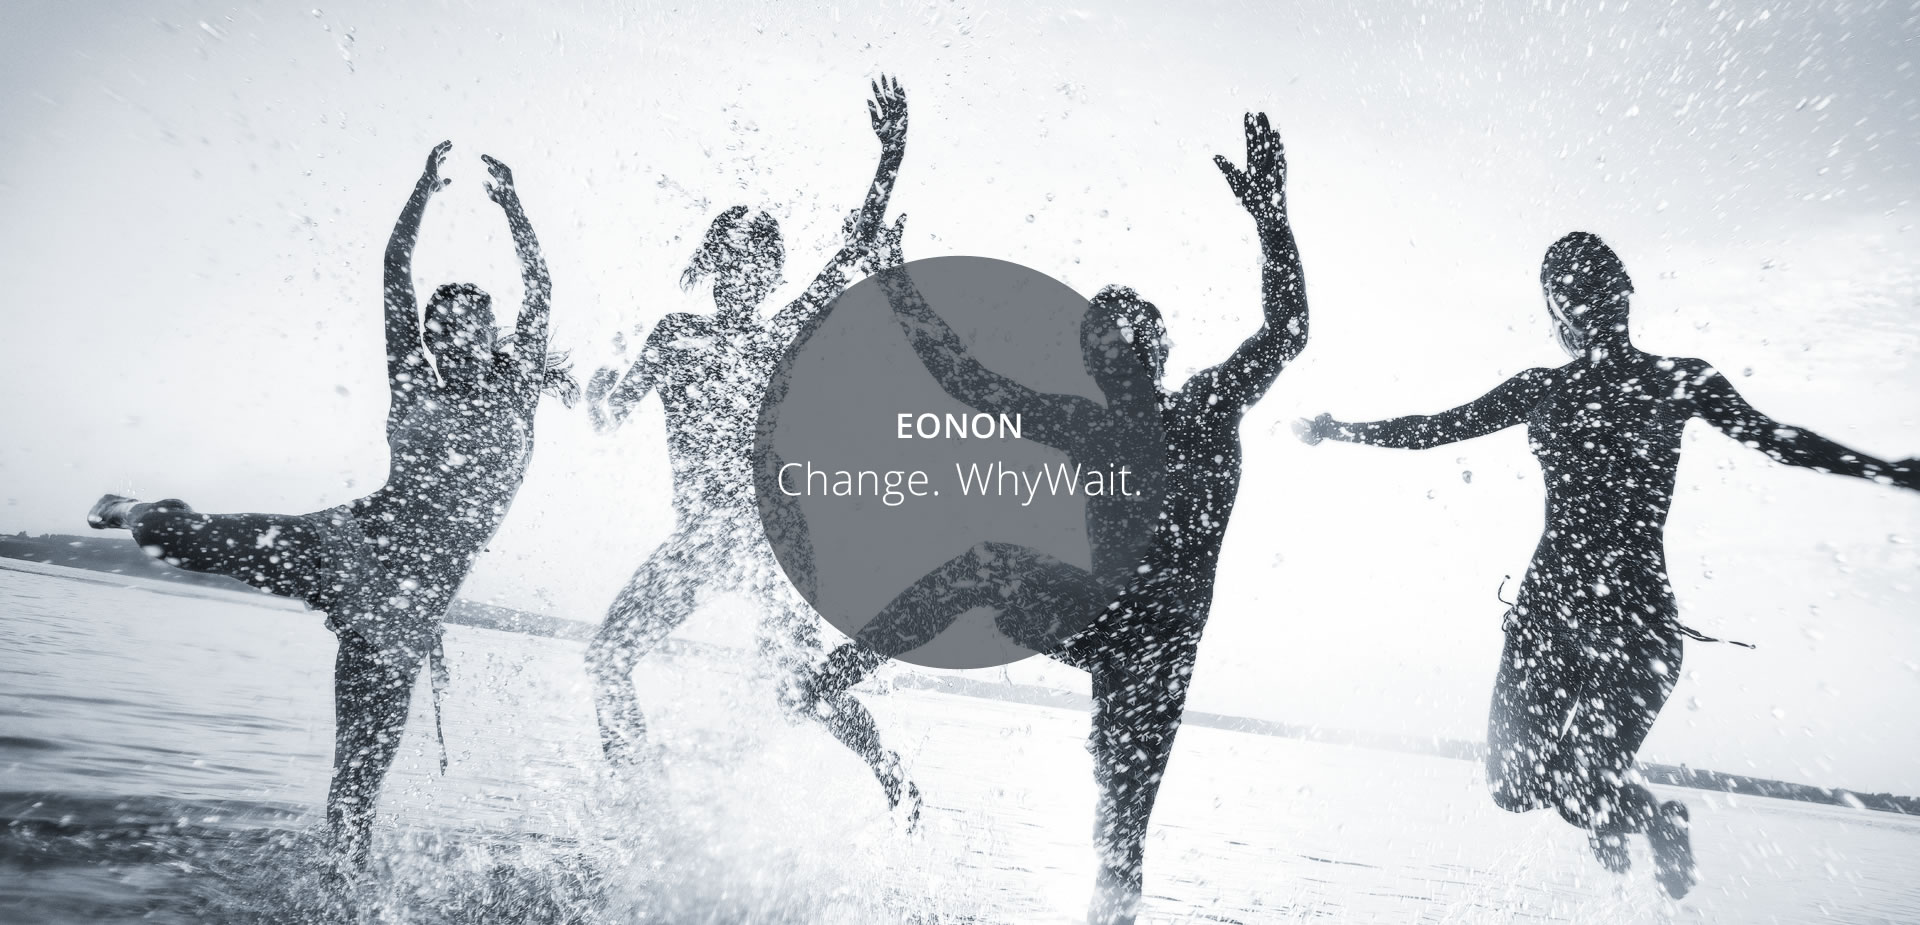 Introducing Eonon New Version of Website – Change. WhyWait.